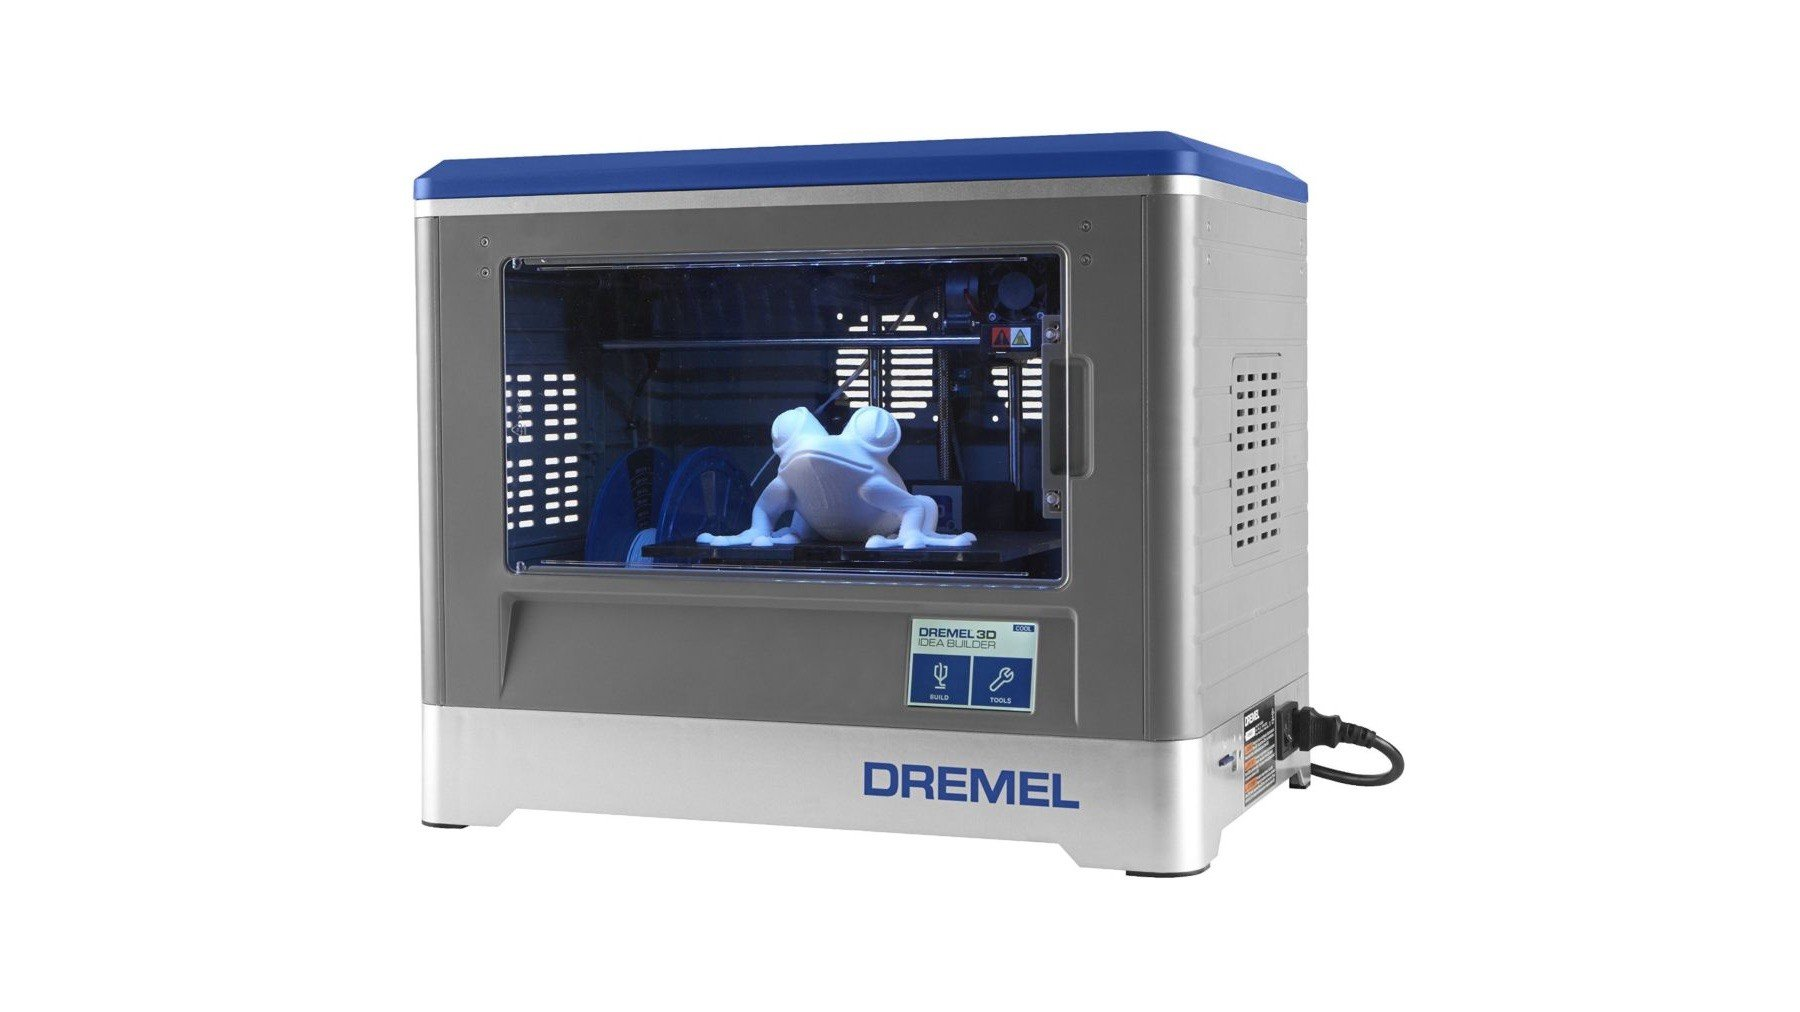 Dremel 3D20 3D Printer: Review the Specs | All3DP